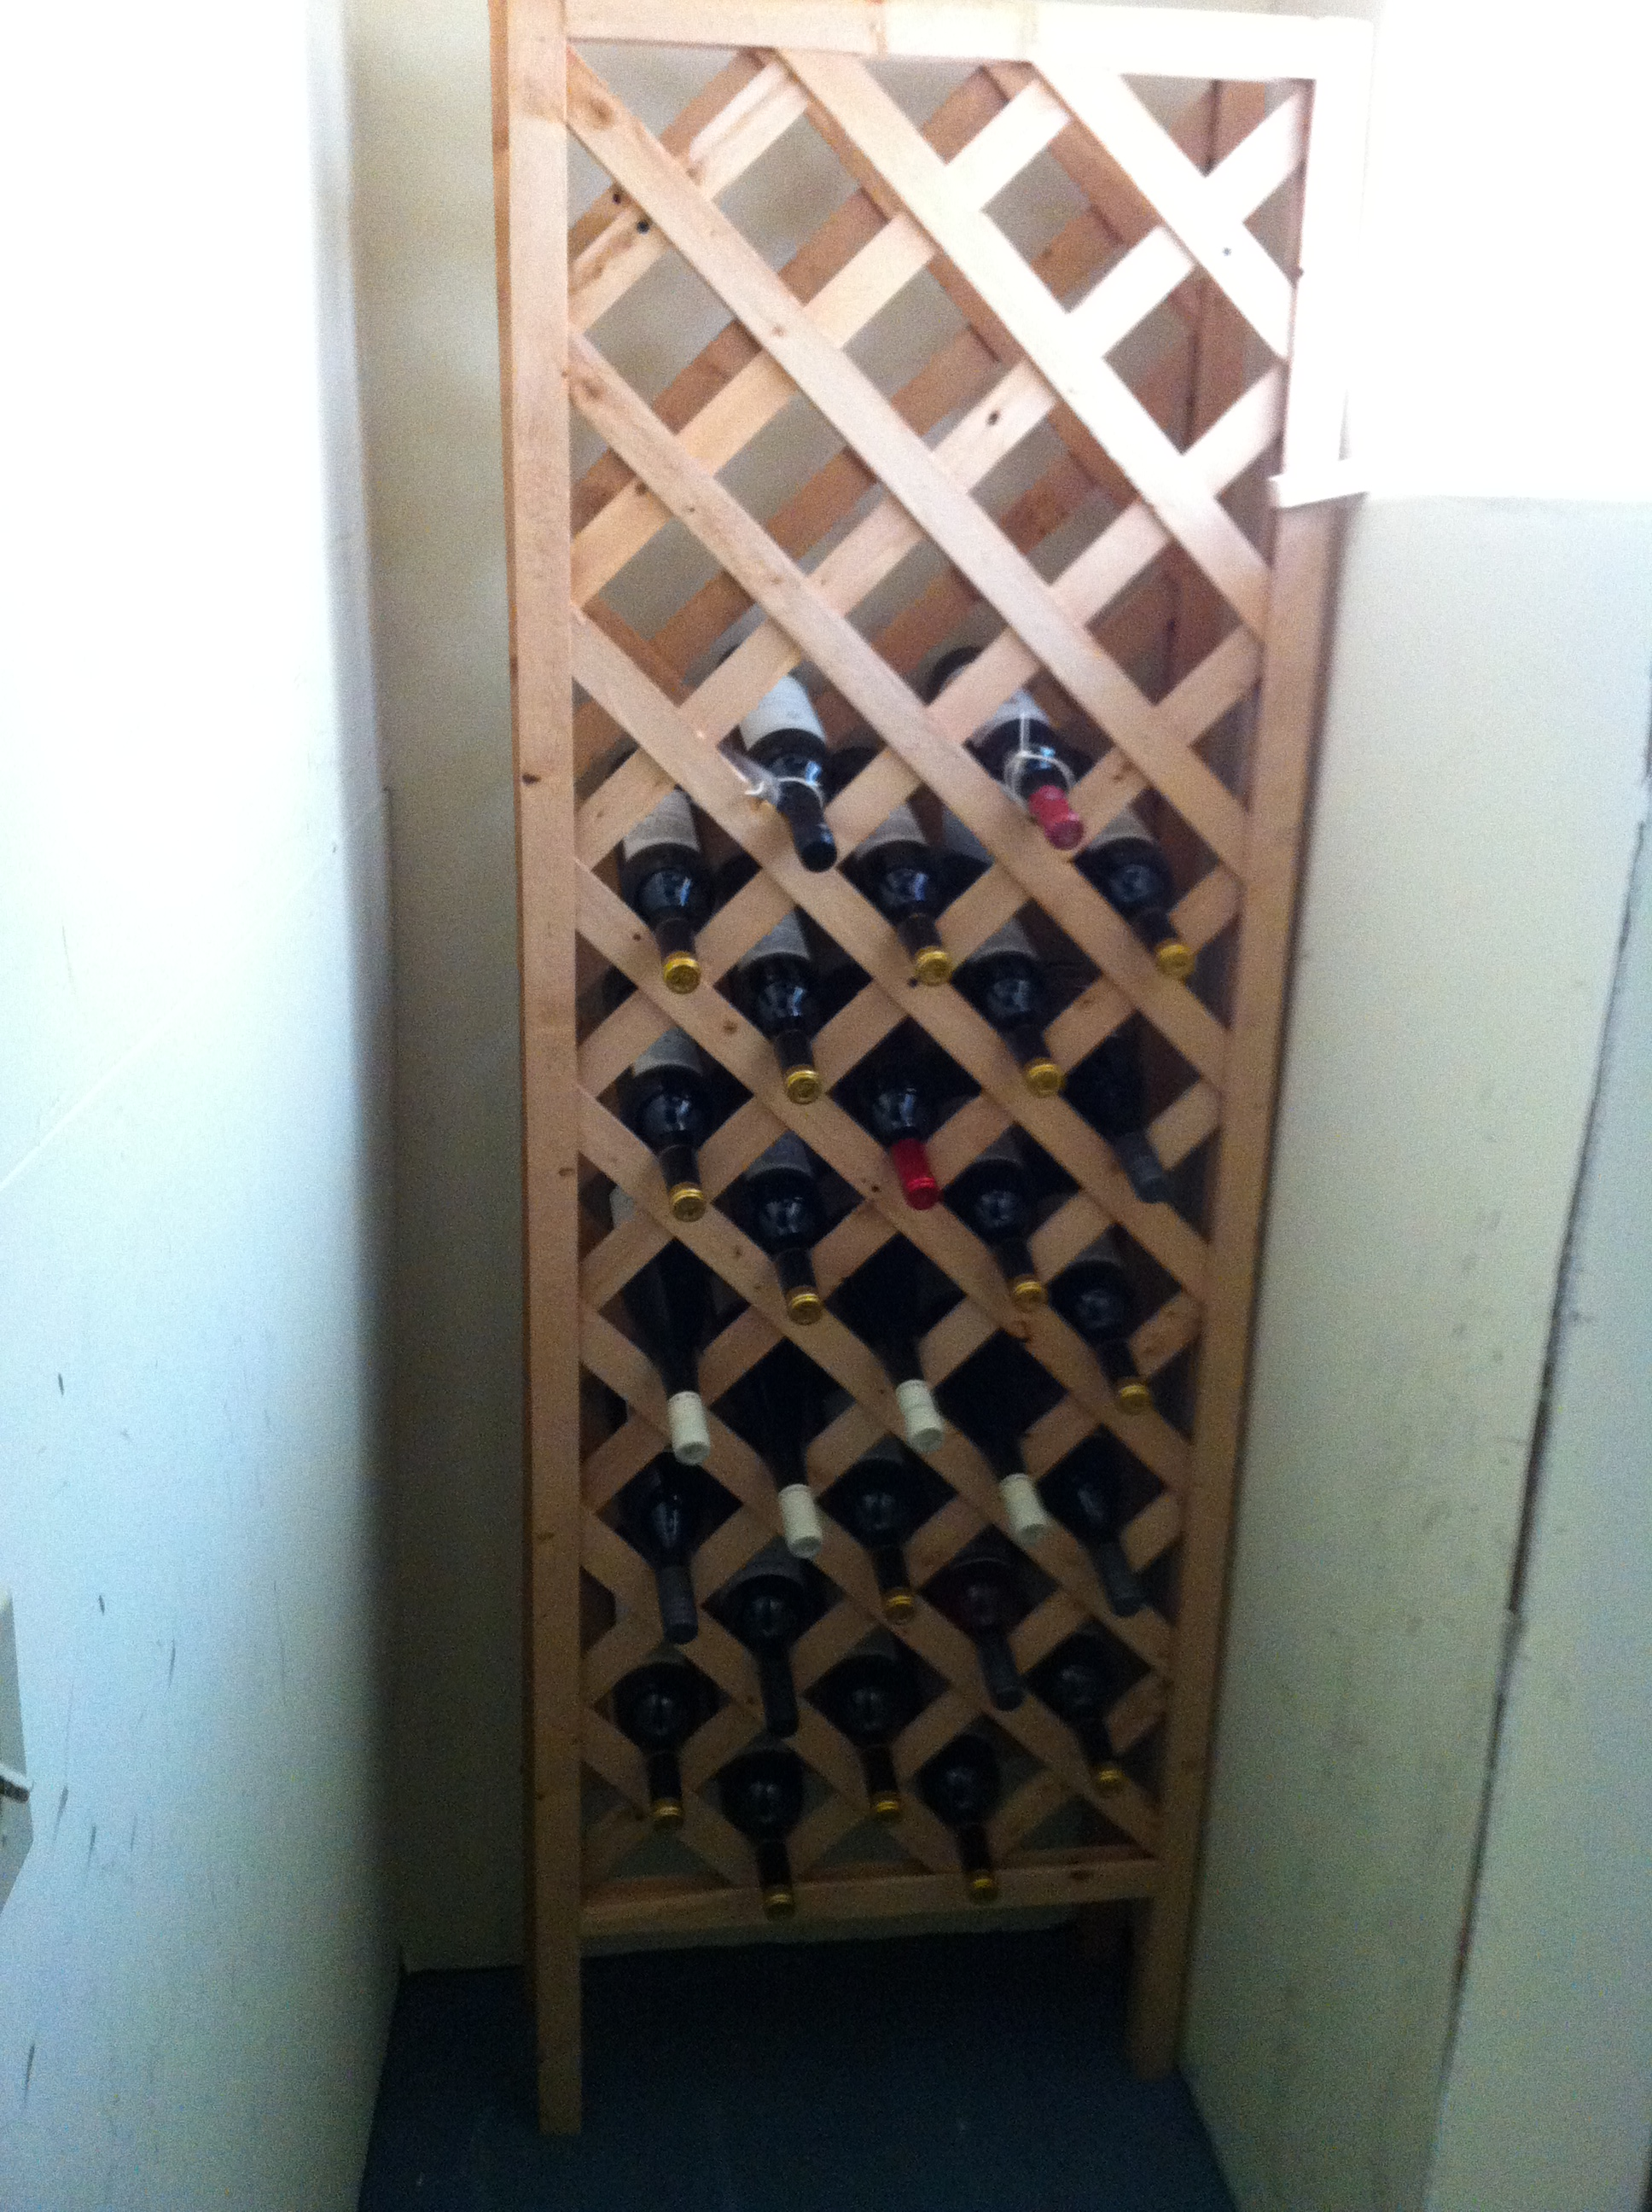 The diy wine cellar aaron berdofe 39 s wine and food experience for Building a wine cellar at home